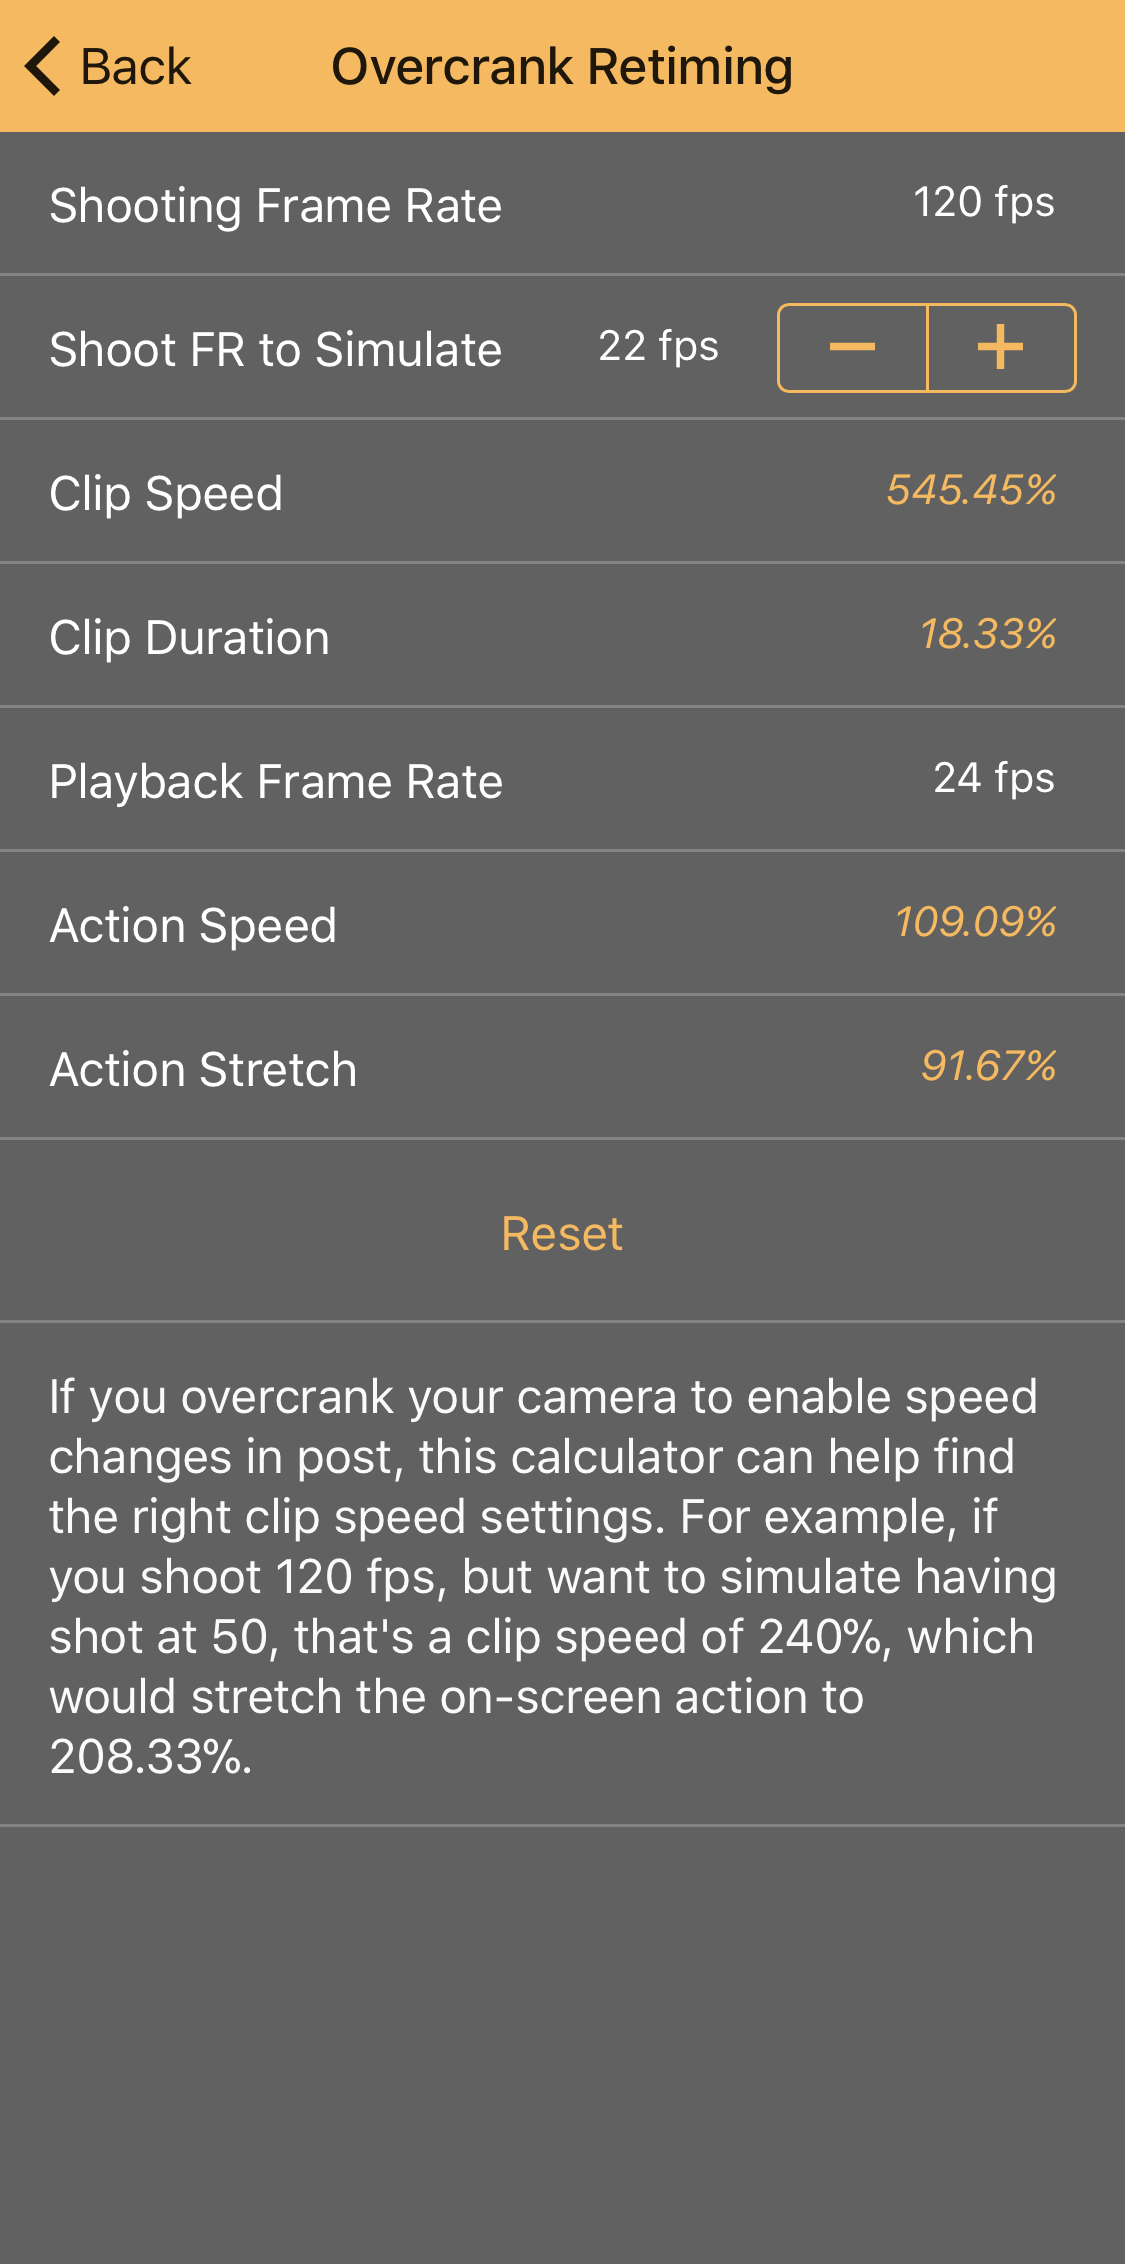 Overcrank Retiming - If you overcrank your camera to enable speed changes in post, this calculator can help find the right clip speed settings. For example, if you shoot 120 fps, but want to simulate having shot at 50, that's a clip speed of 240%, which would stretch the on-screen action to 208.33%.